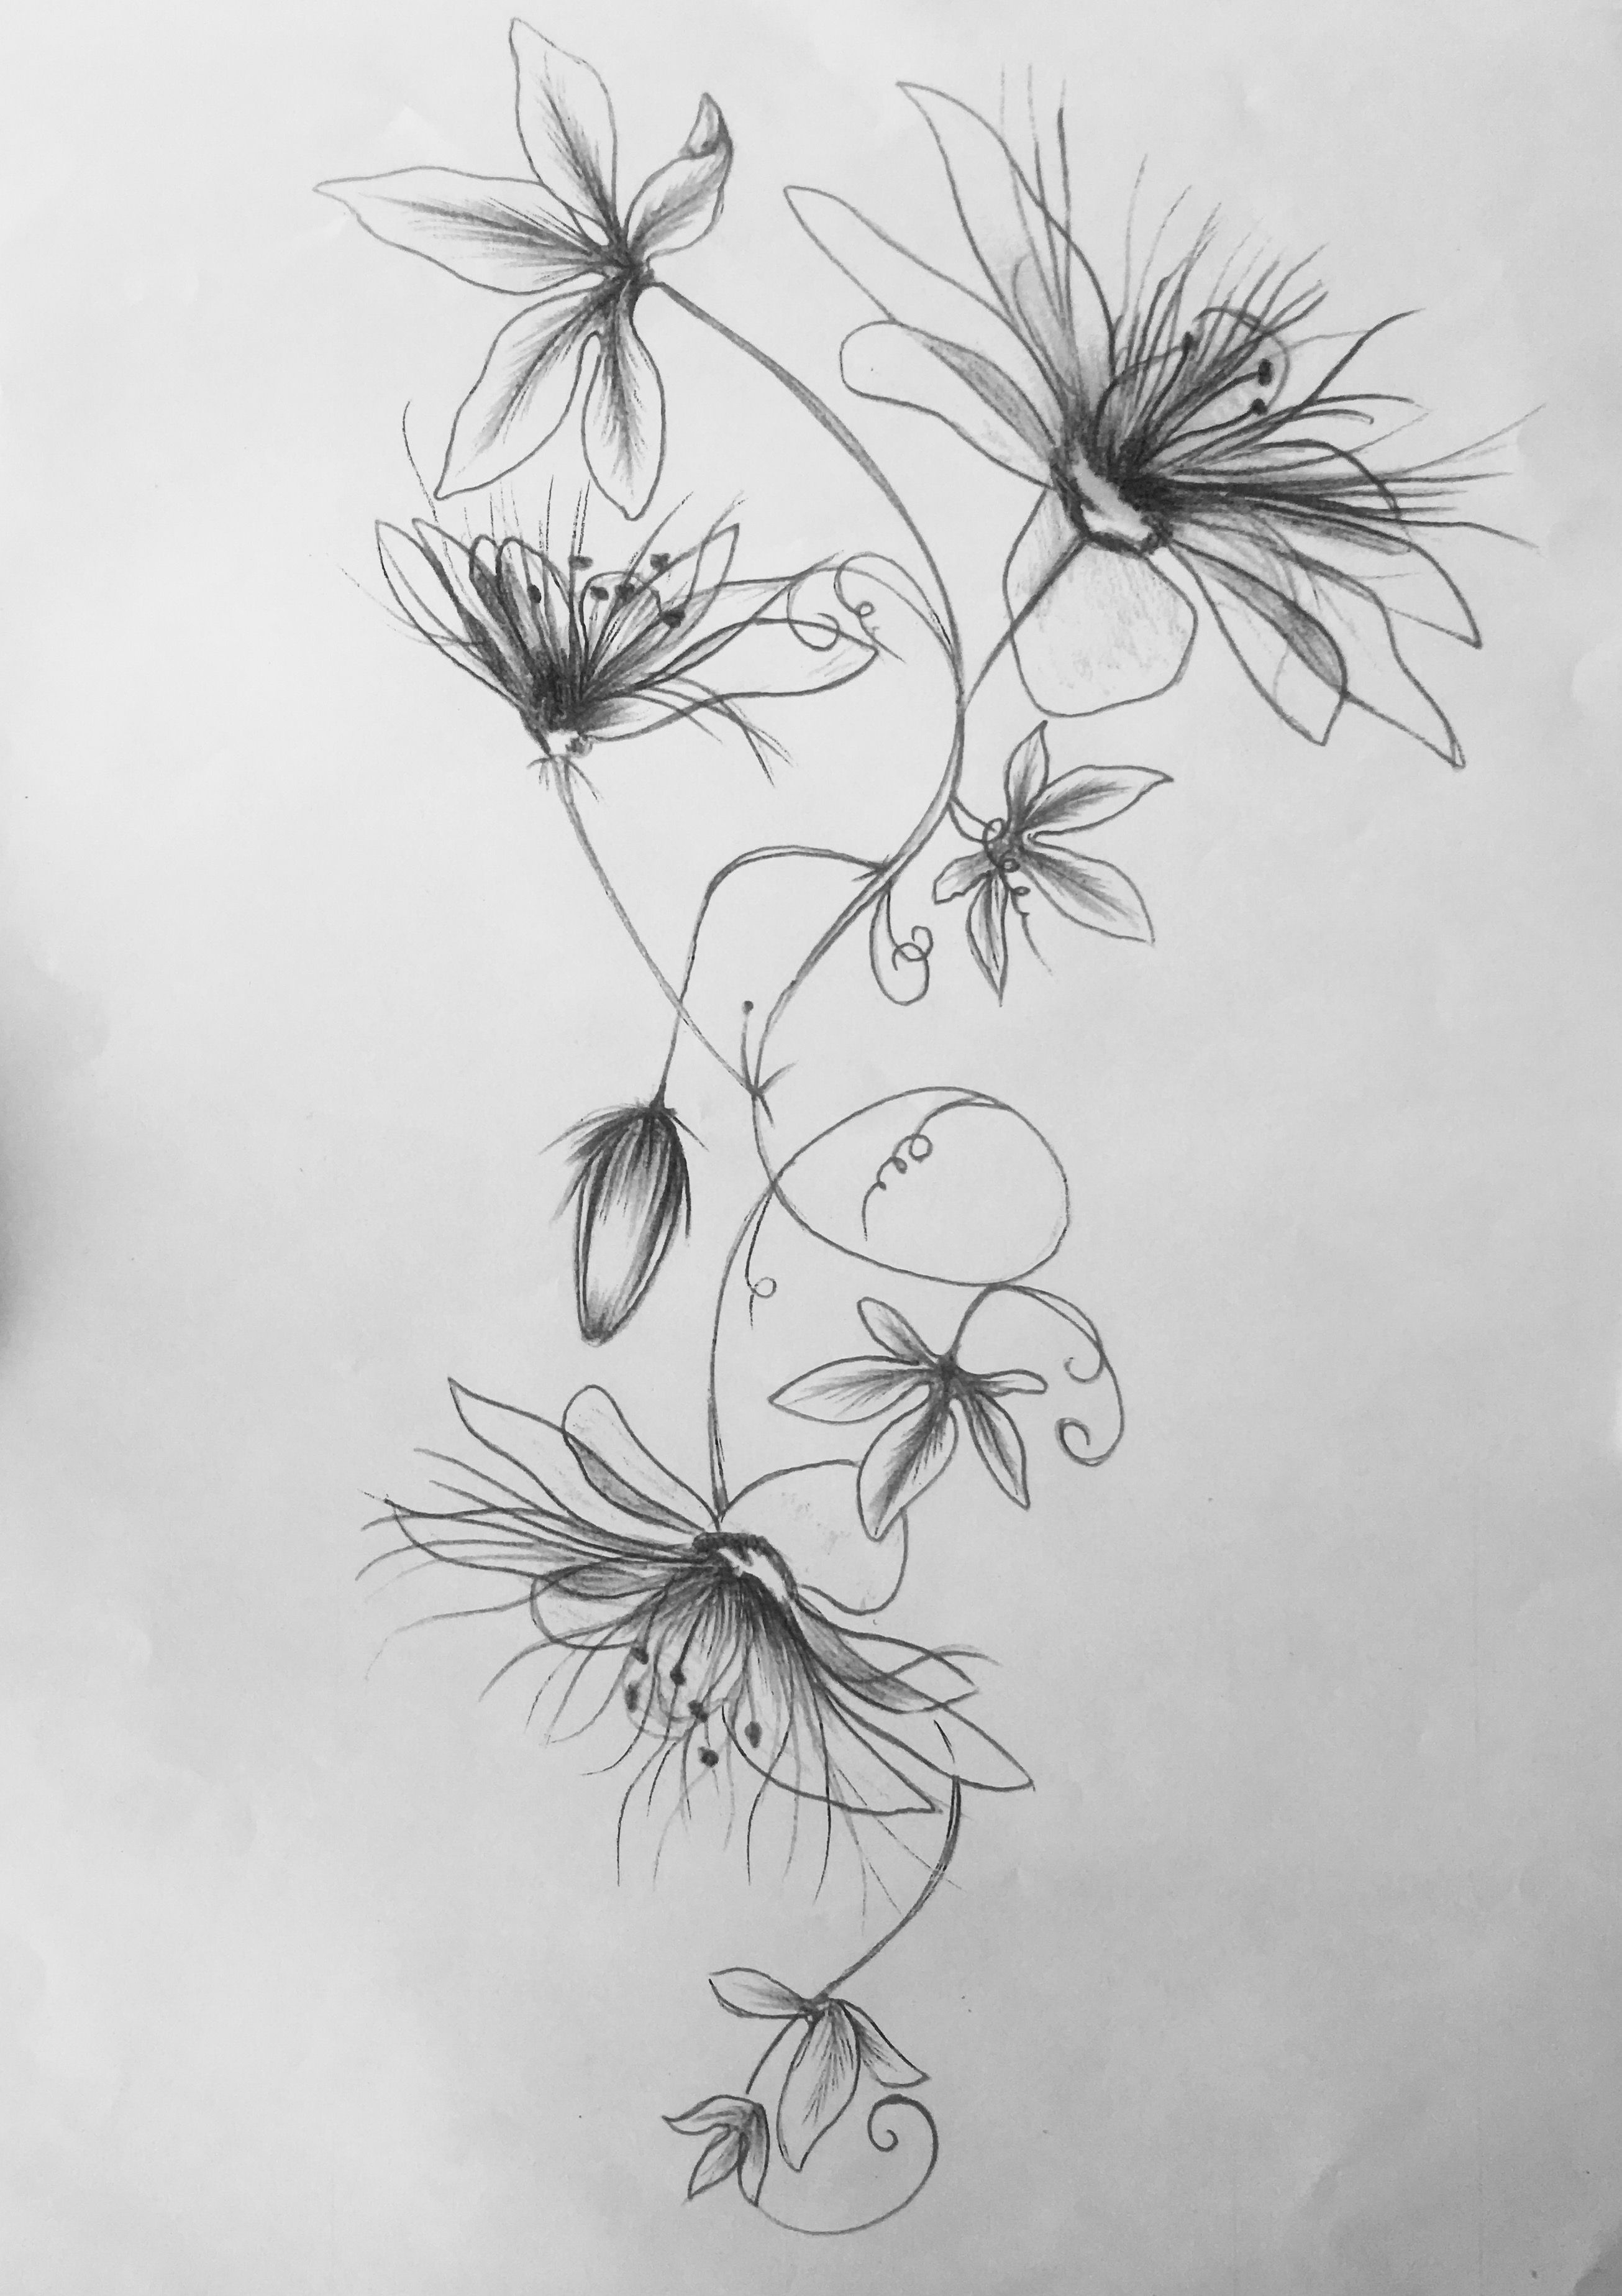 Tattoo passiflora flowers tattoo pinterest tatouage fleur tatouage et tatouage femme - Fleur tatouage dessin ...